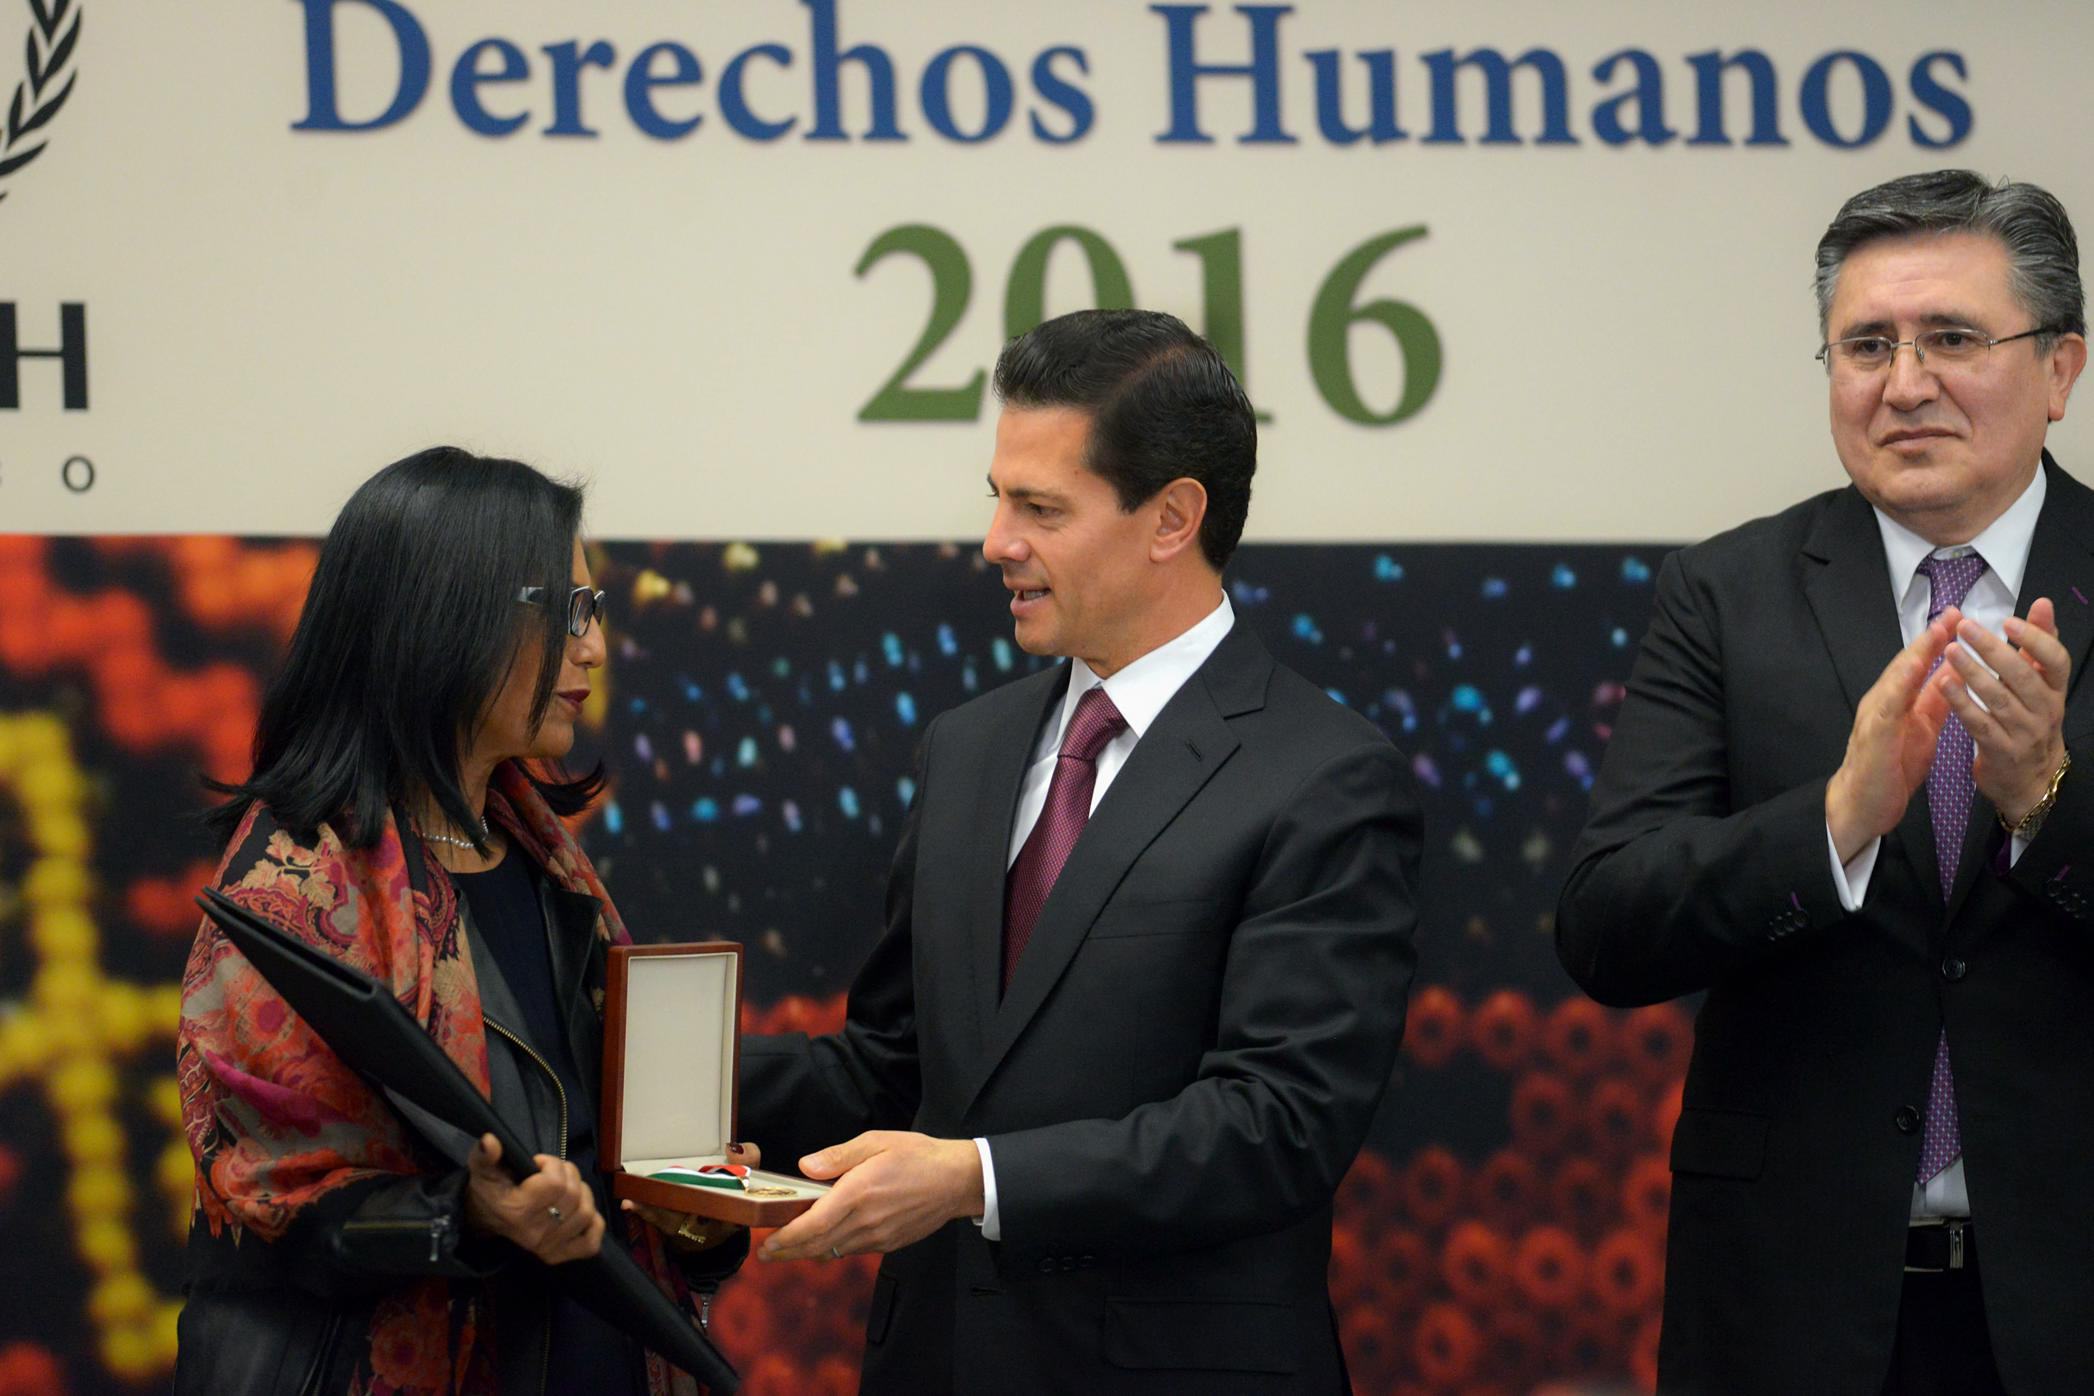 President Peña Nieto confirmed the government's unwavering commitment to the respect and protection of human rights.